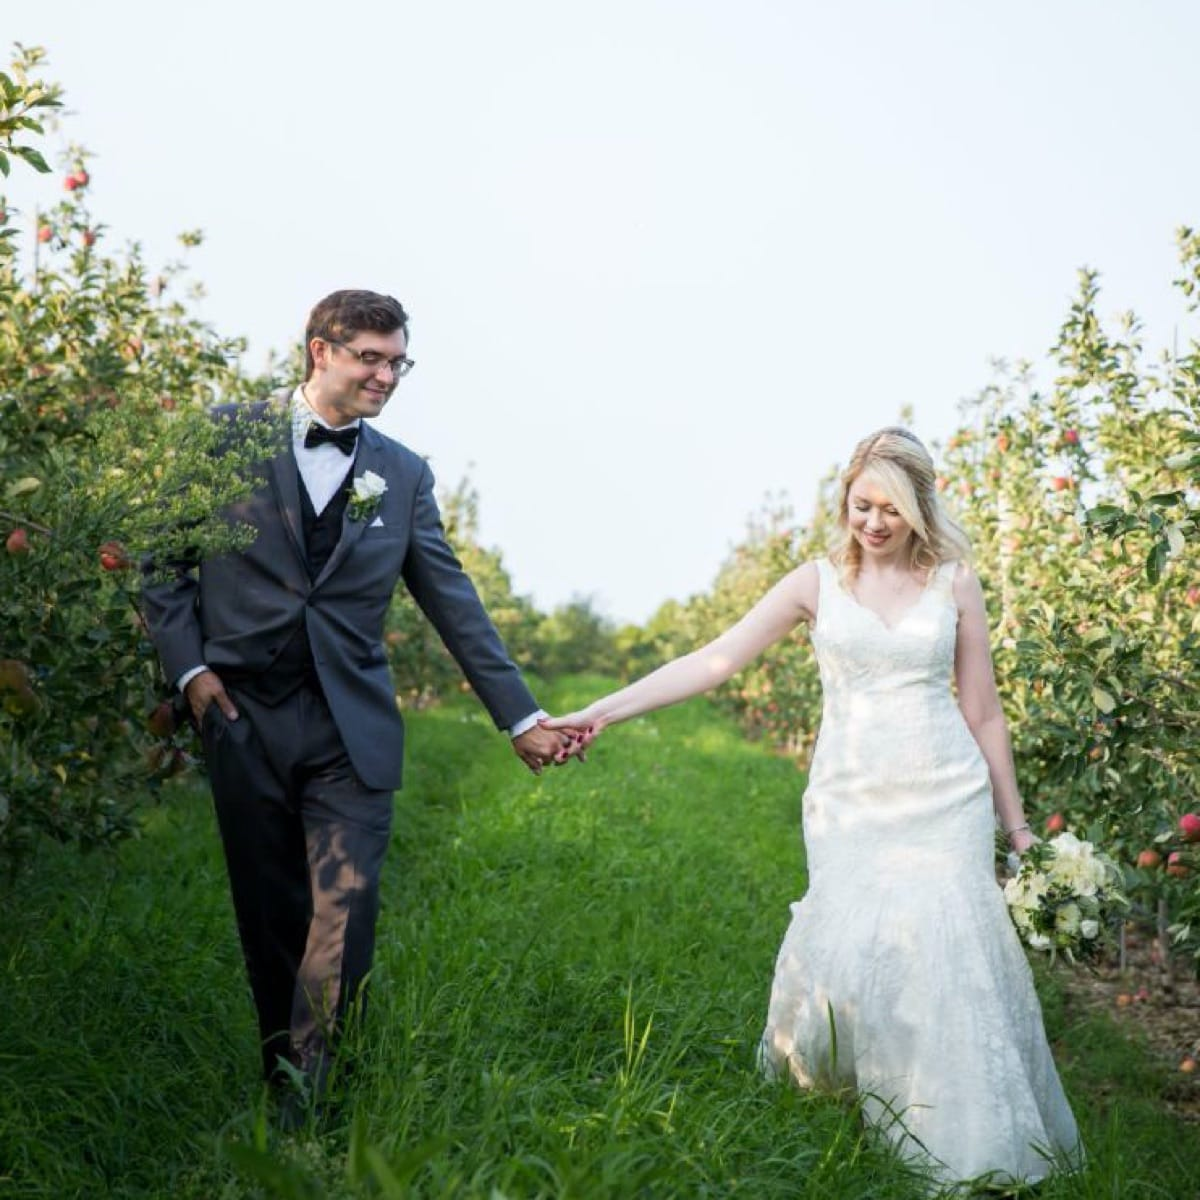 Newlywed couple holding hands and walking through an apple orchard.